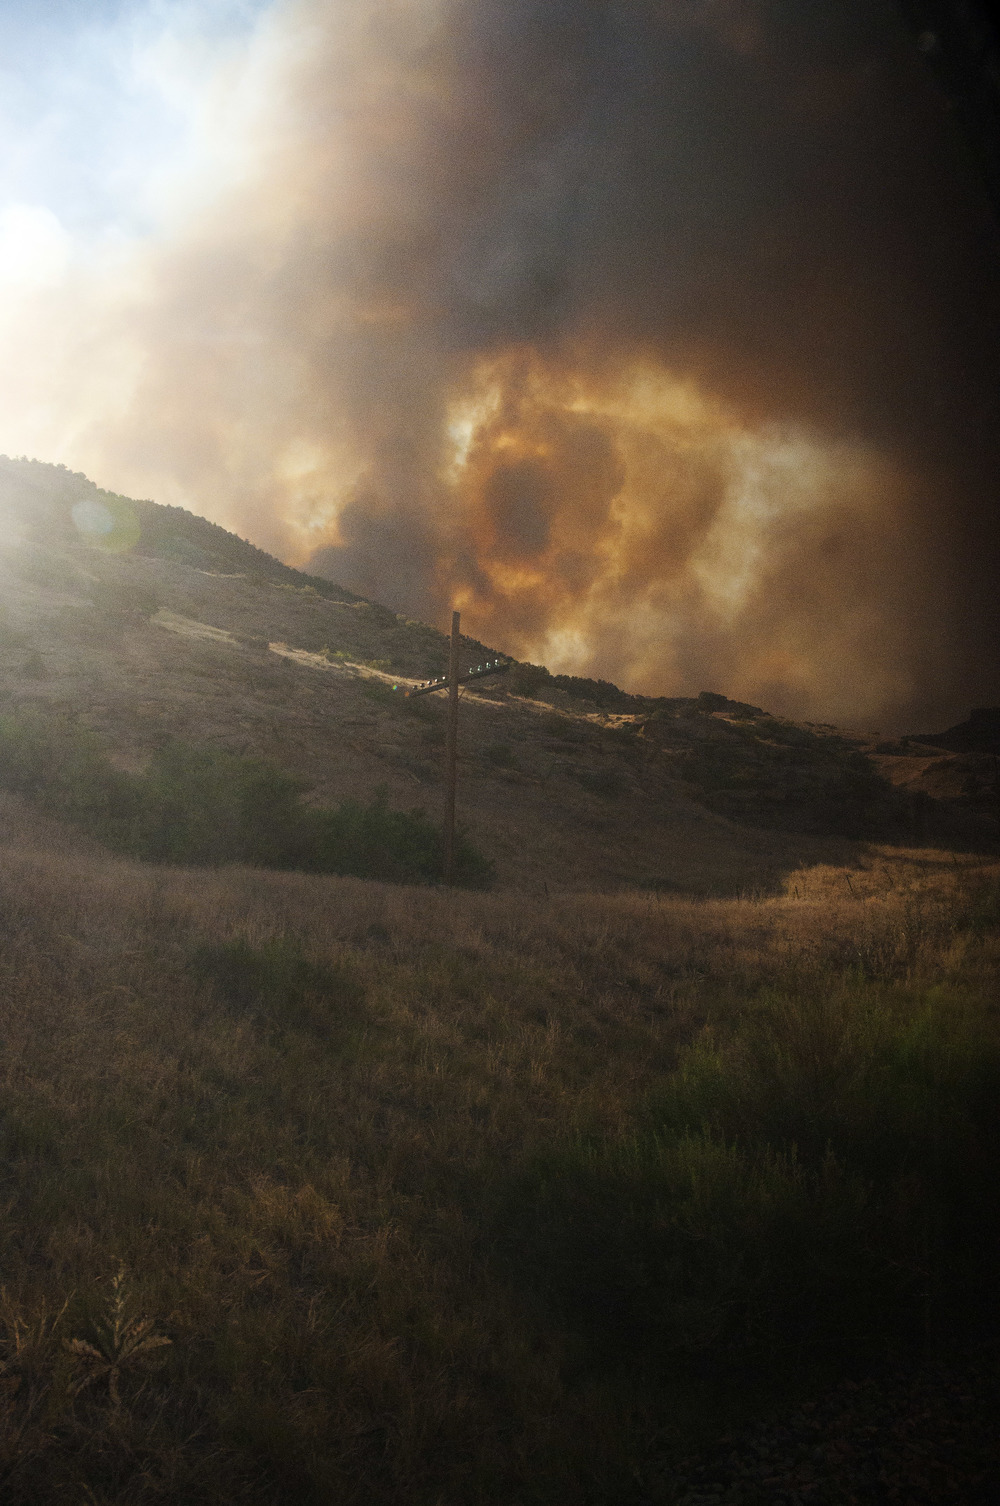 The Pine Ridge fire burns down into De Beque Canyon near Grand Junction, CO on 28 June 2012. The fire, seen here from an Amtrak train, shut down both the railway line and Interstate 70 for hours until the wind pushed it back atop the surrounding mesa.